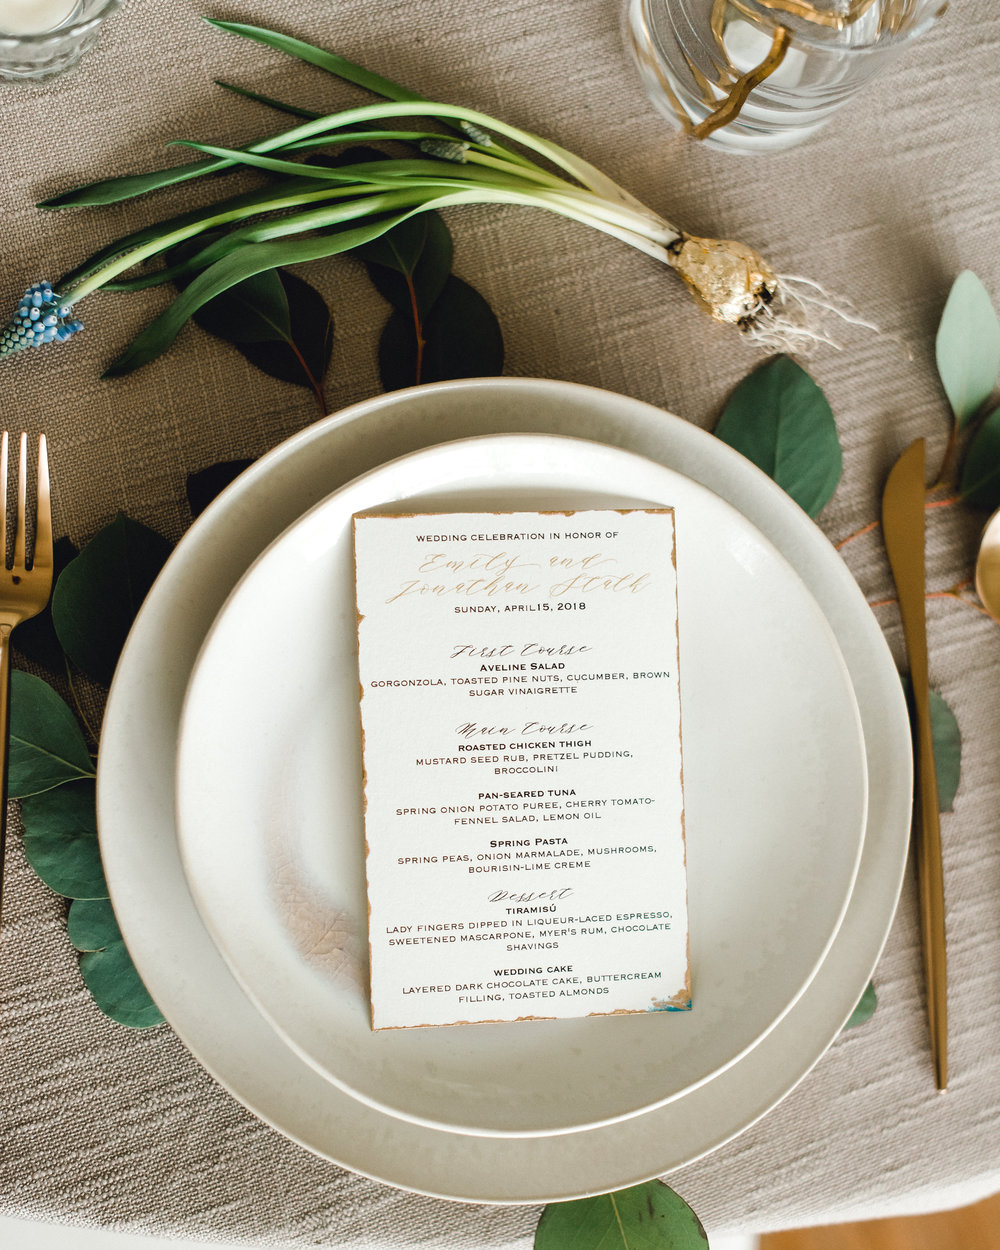 K-flowers-designs-Wedding-Menu.jpg